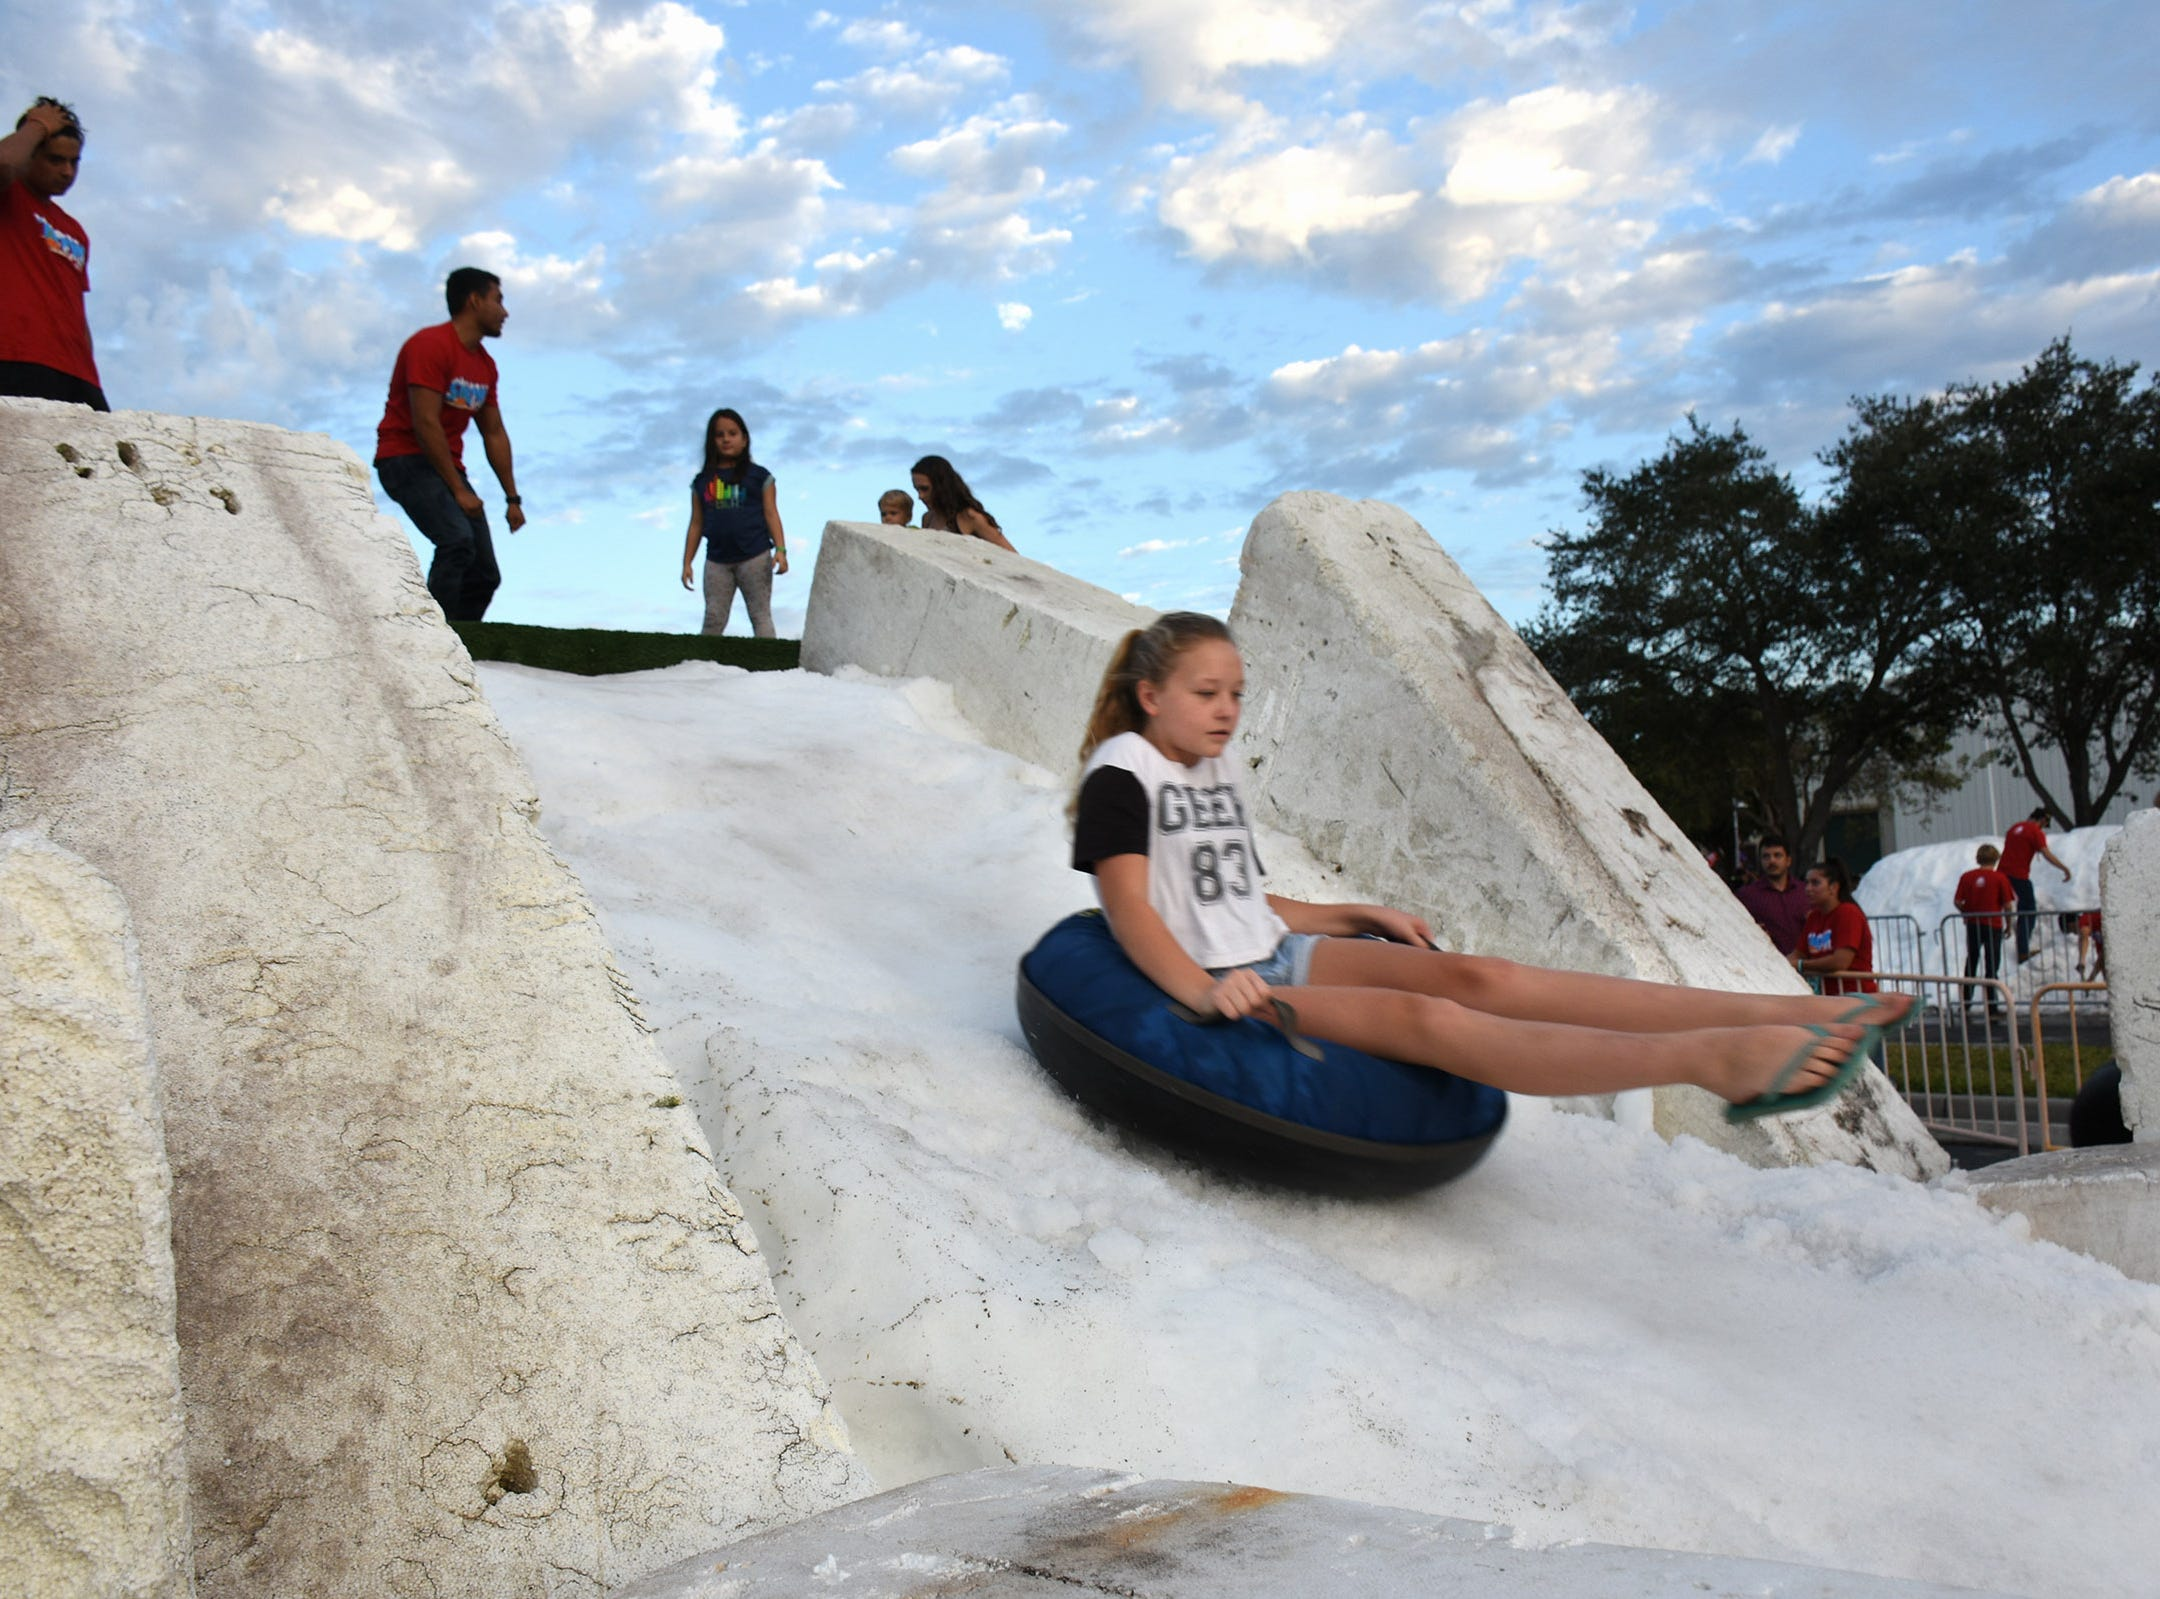 Crowds pack Golden Gate Community Venter for a 'snow ball'